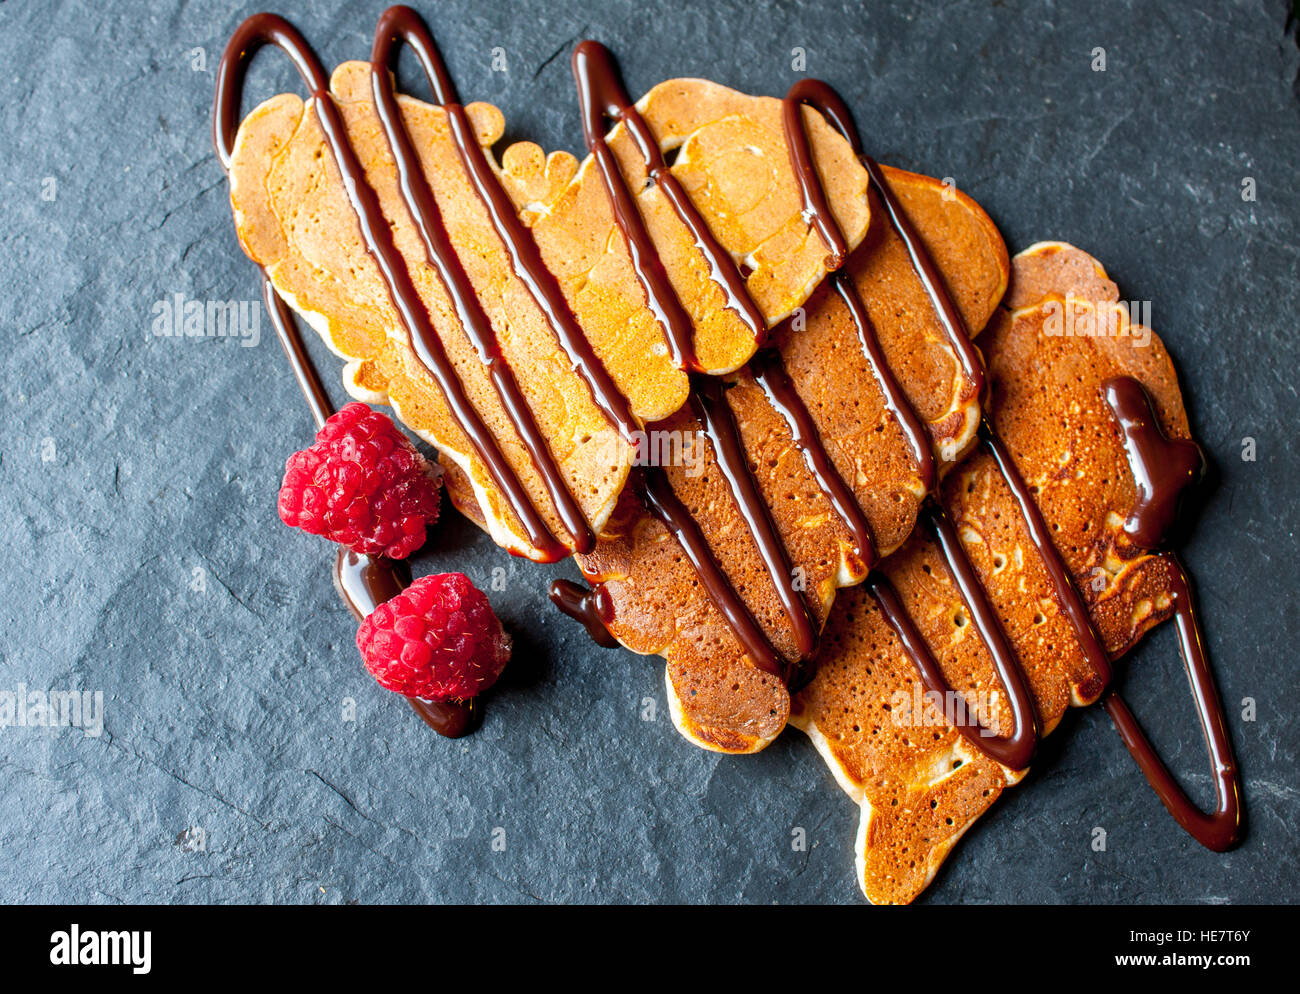 Pancakes in the shape of a heart with chocolate syrup and raspberries on valentine's day. Stock Photo